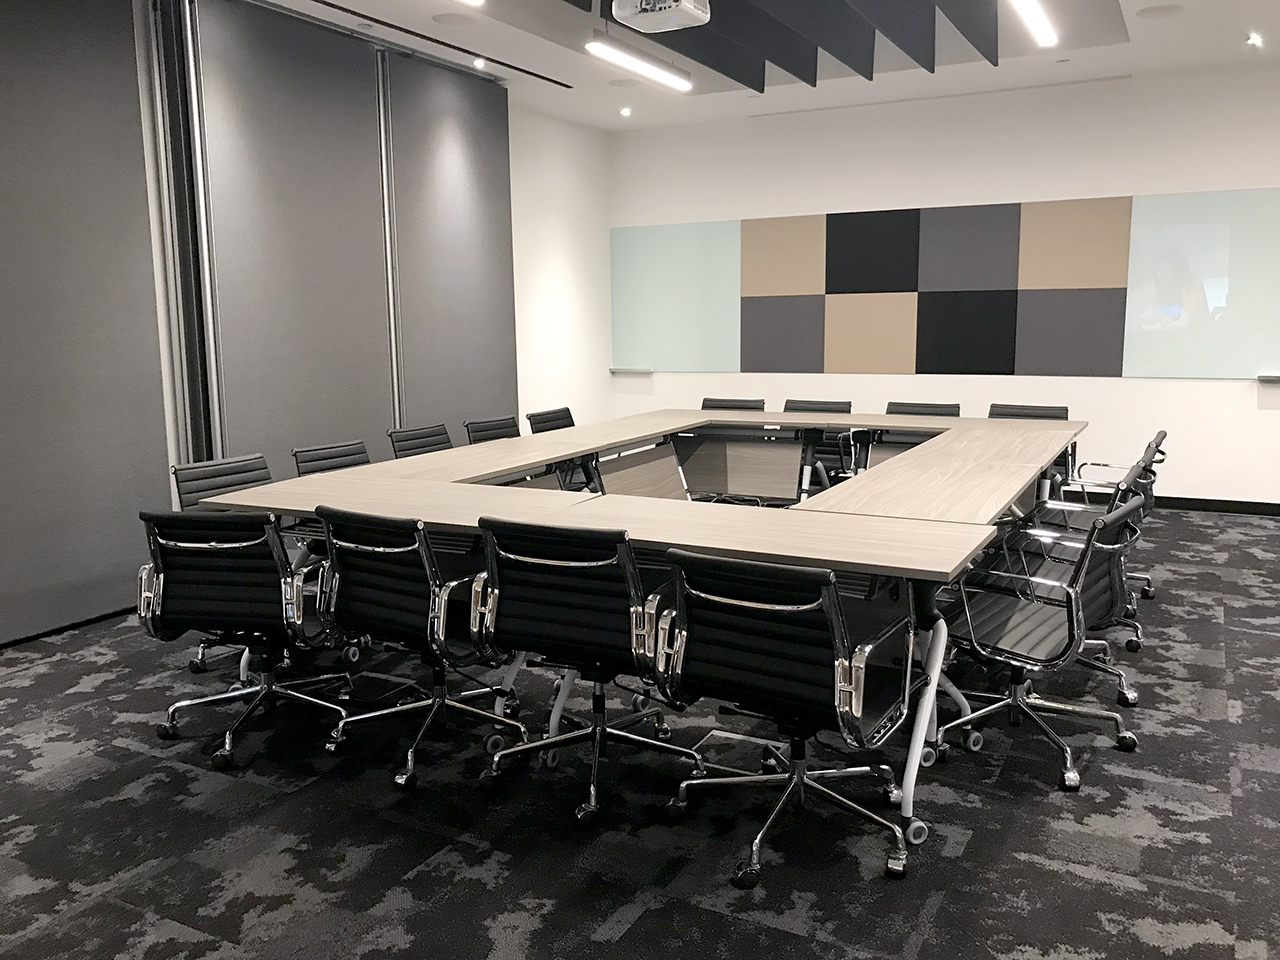 Teledirect Pte Ltd (Level 6) - Viva Business Park | Product Seen: [Eam Aluminium Midback (replica) Office Chair]